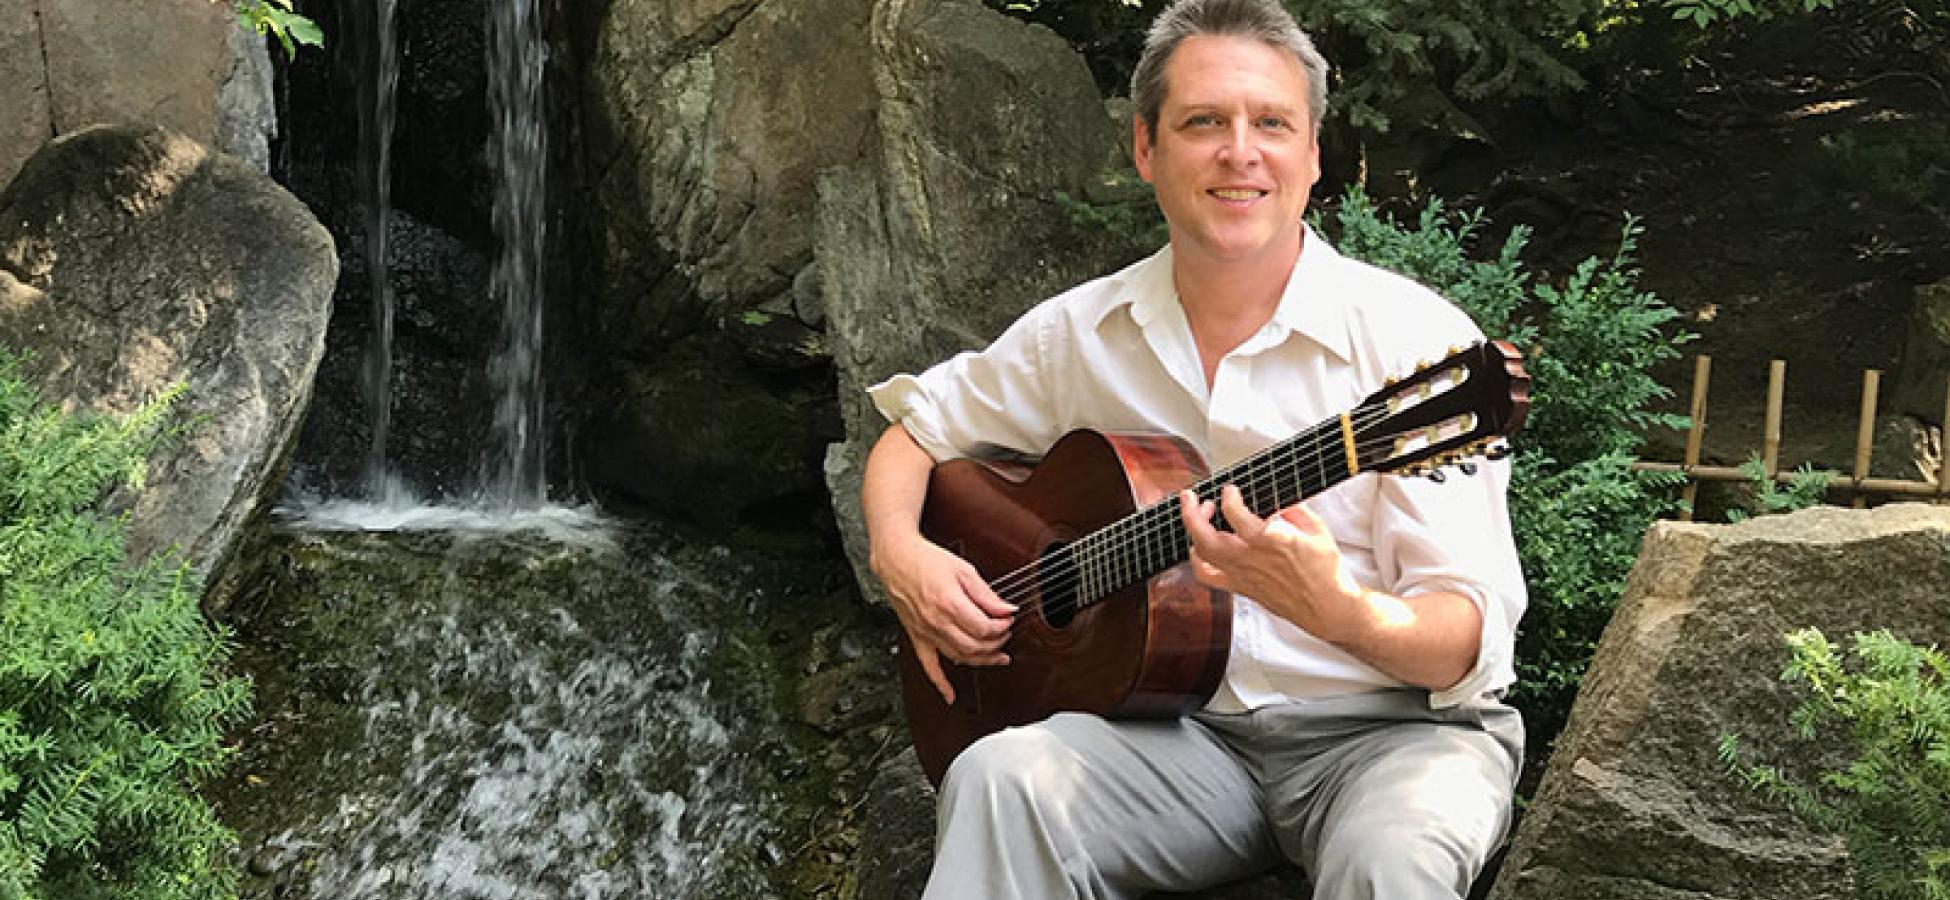 Paul Grove seated in natural setting with guitar